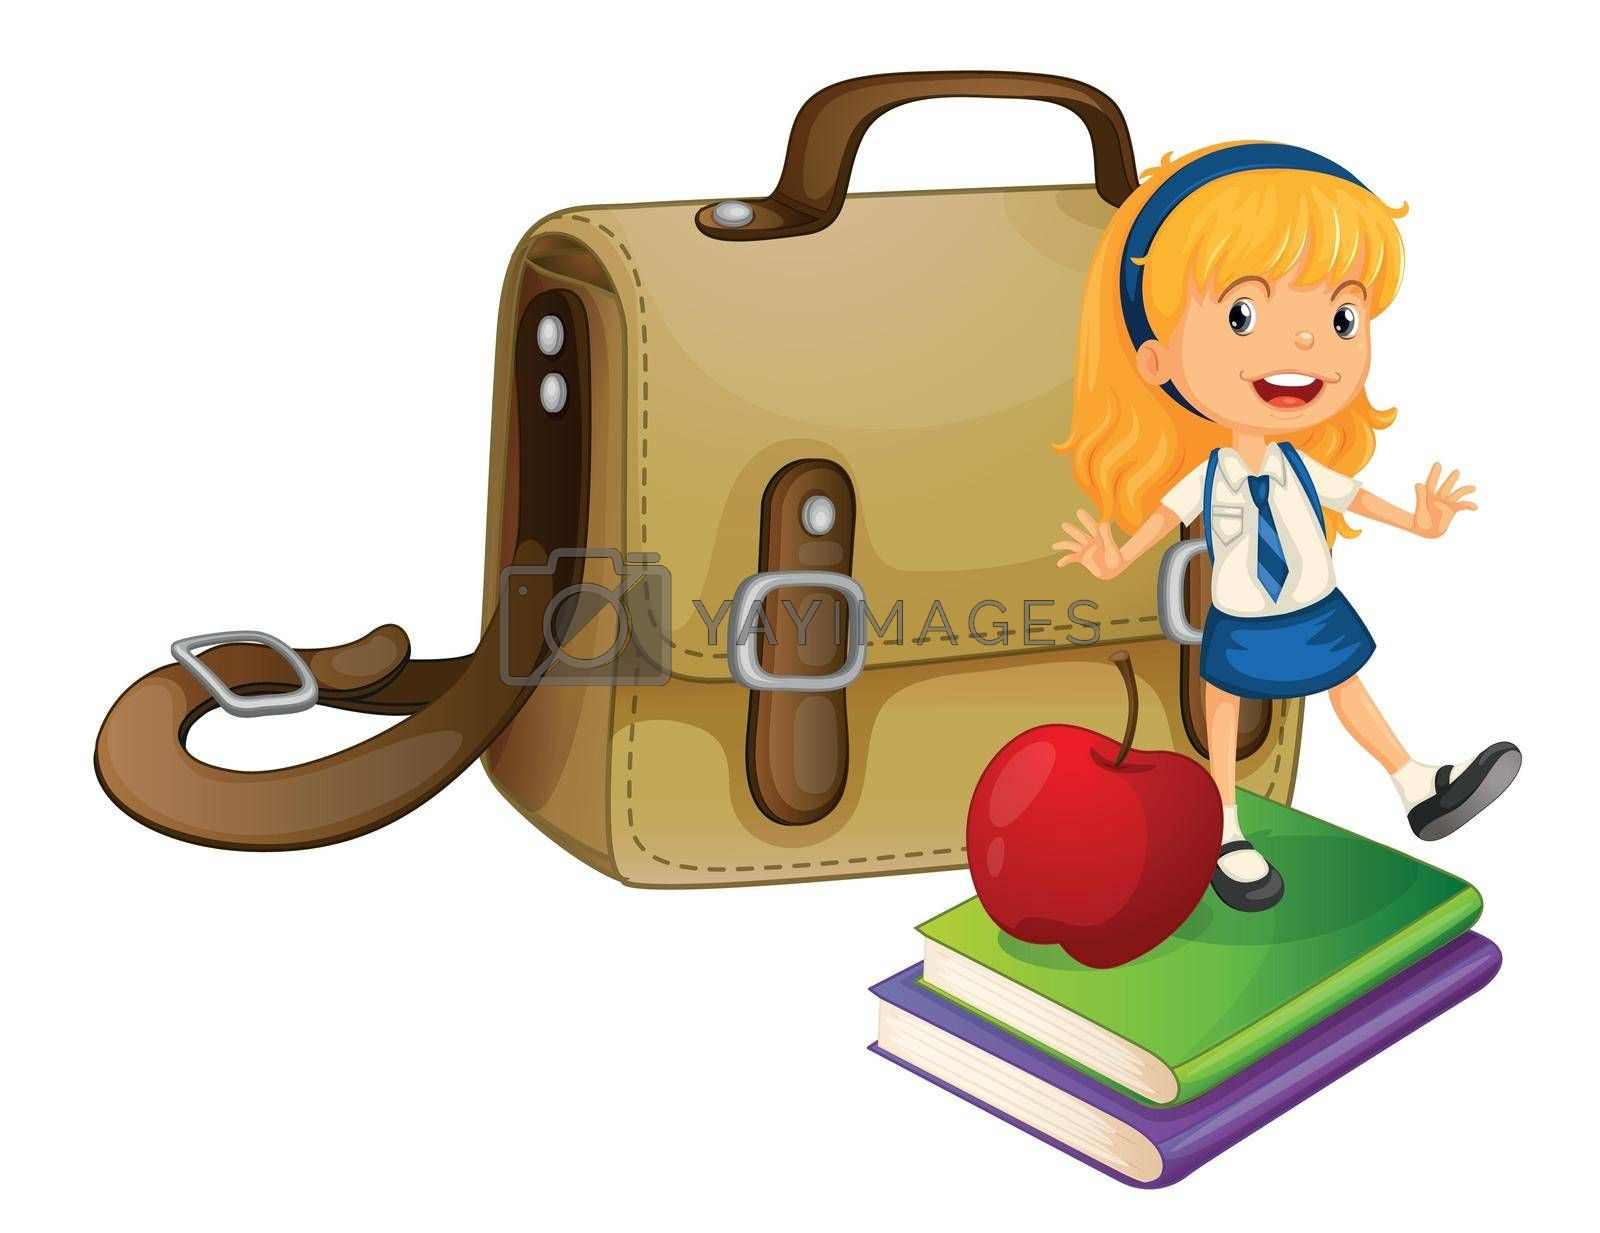 Royalty free image of school concept by iimages